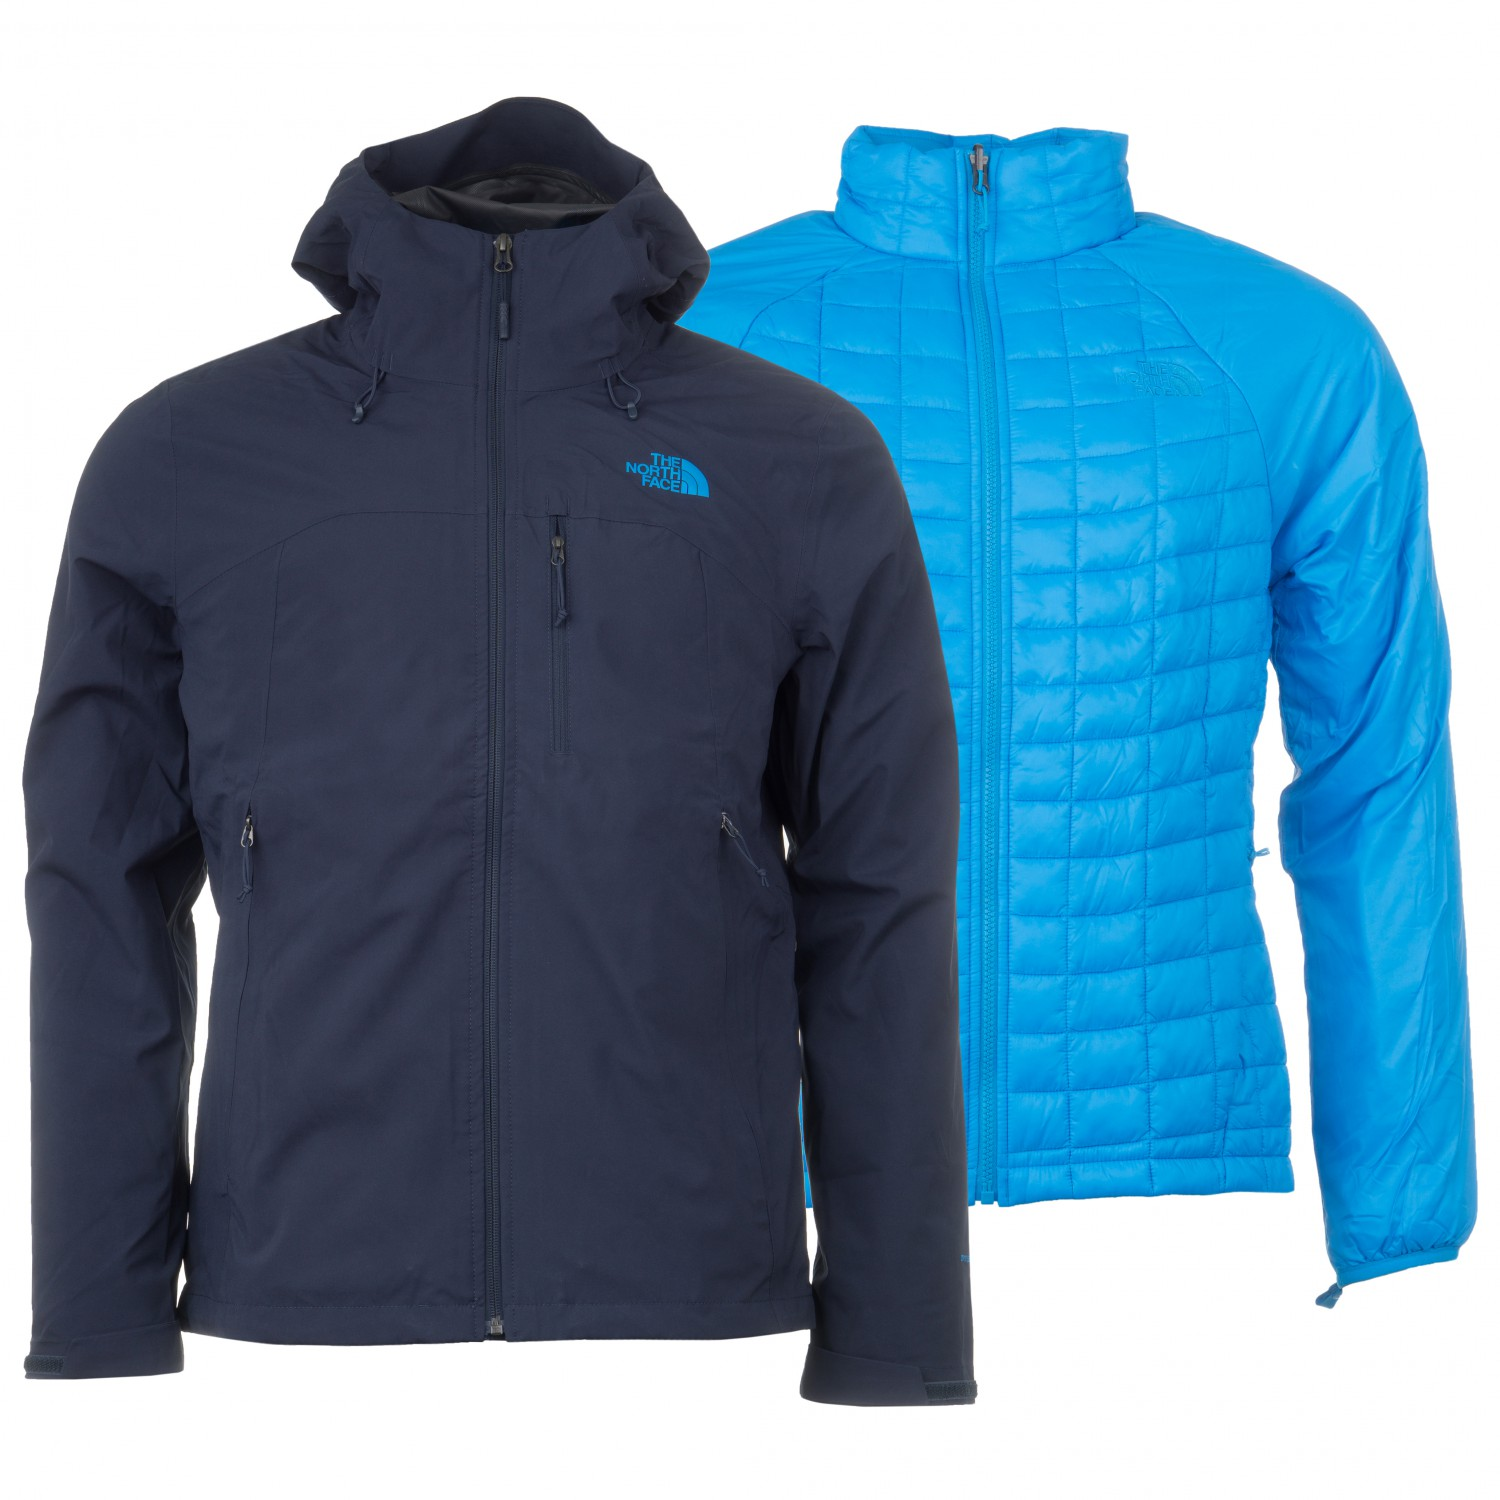 5dde0a2e7f The North Face Thermoball Triclimate Jacket Men s